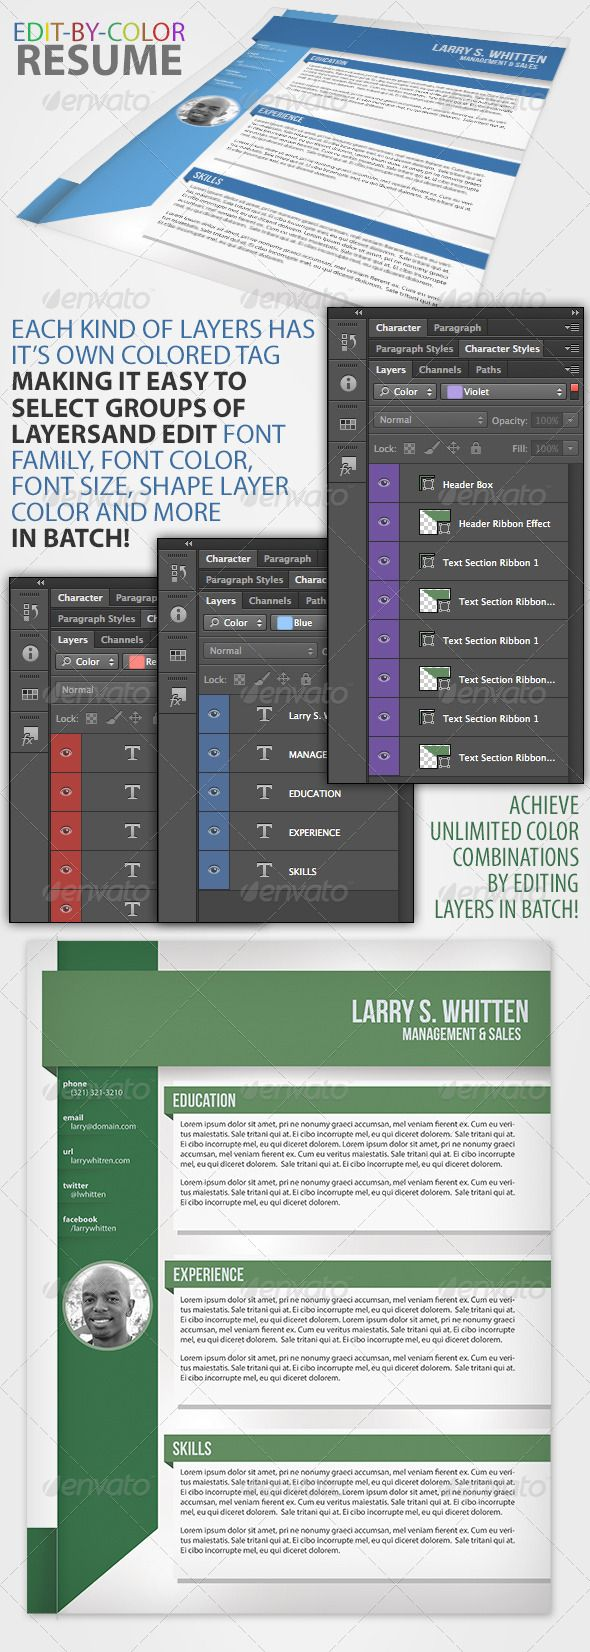 Edit By Color Resume GraphicRiver This is a fully